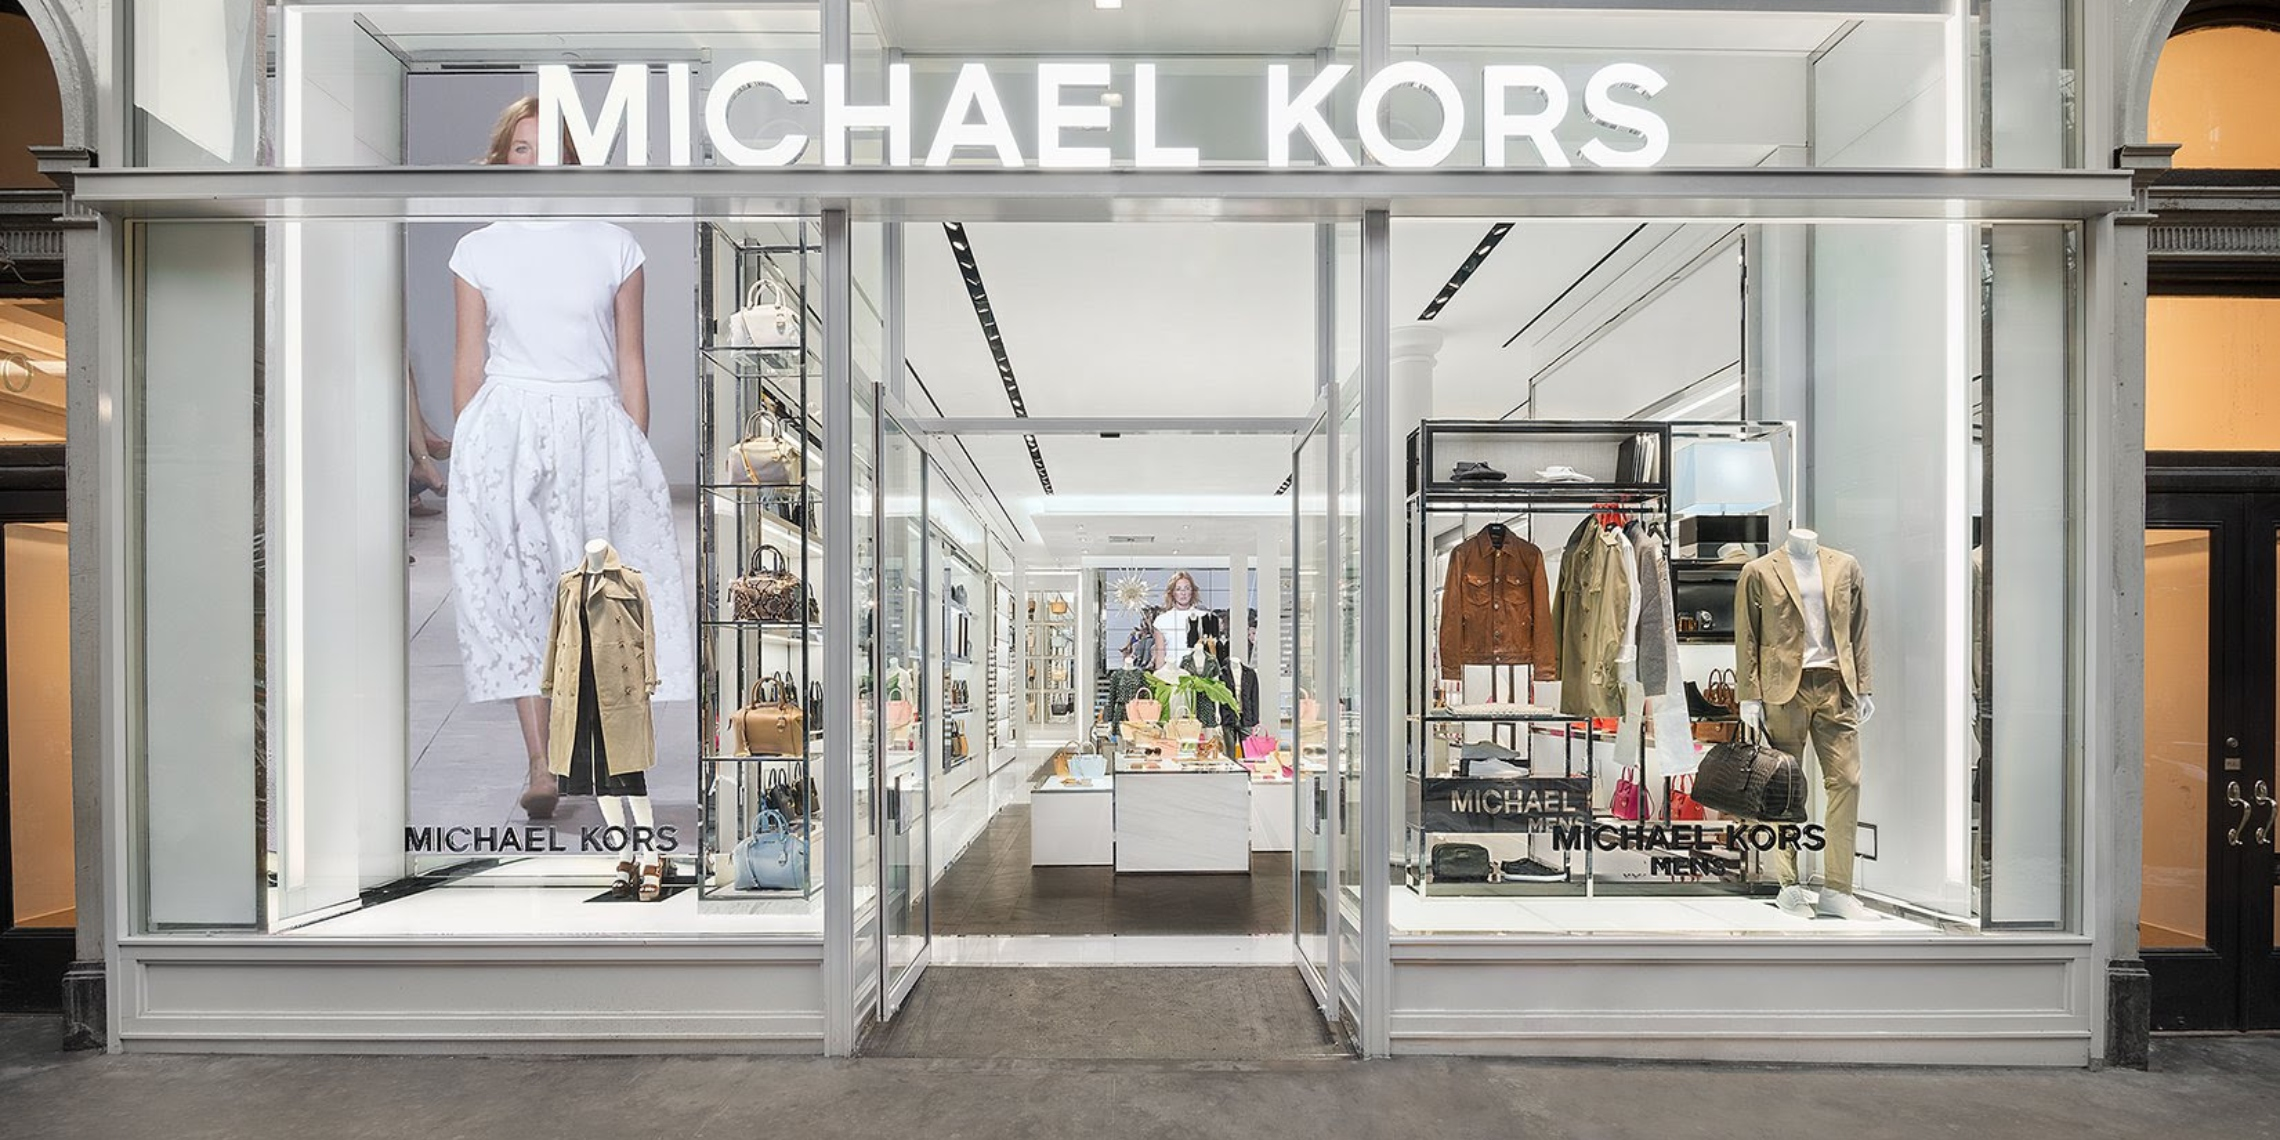 MICHAEL KORS: USA online shop for jet set luxury: designer handbags, watches, shoes, clothing & more. Receive free shipping and returns